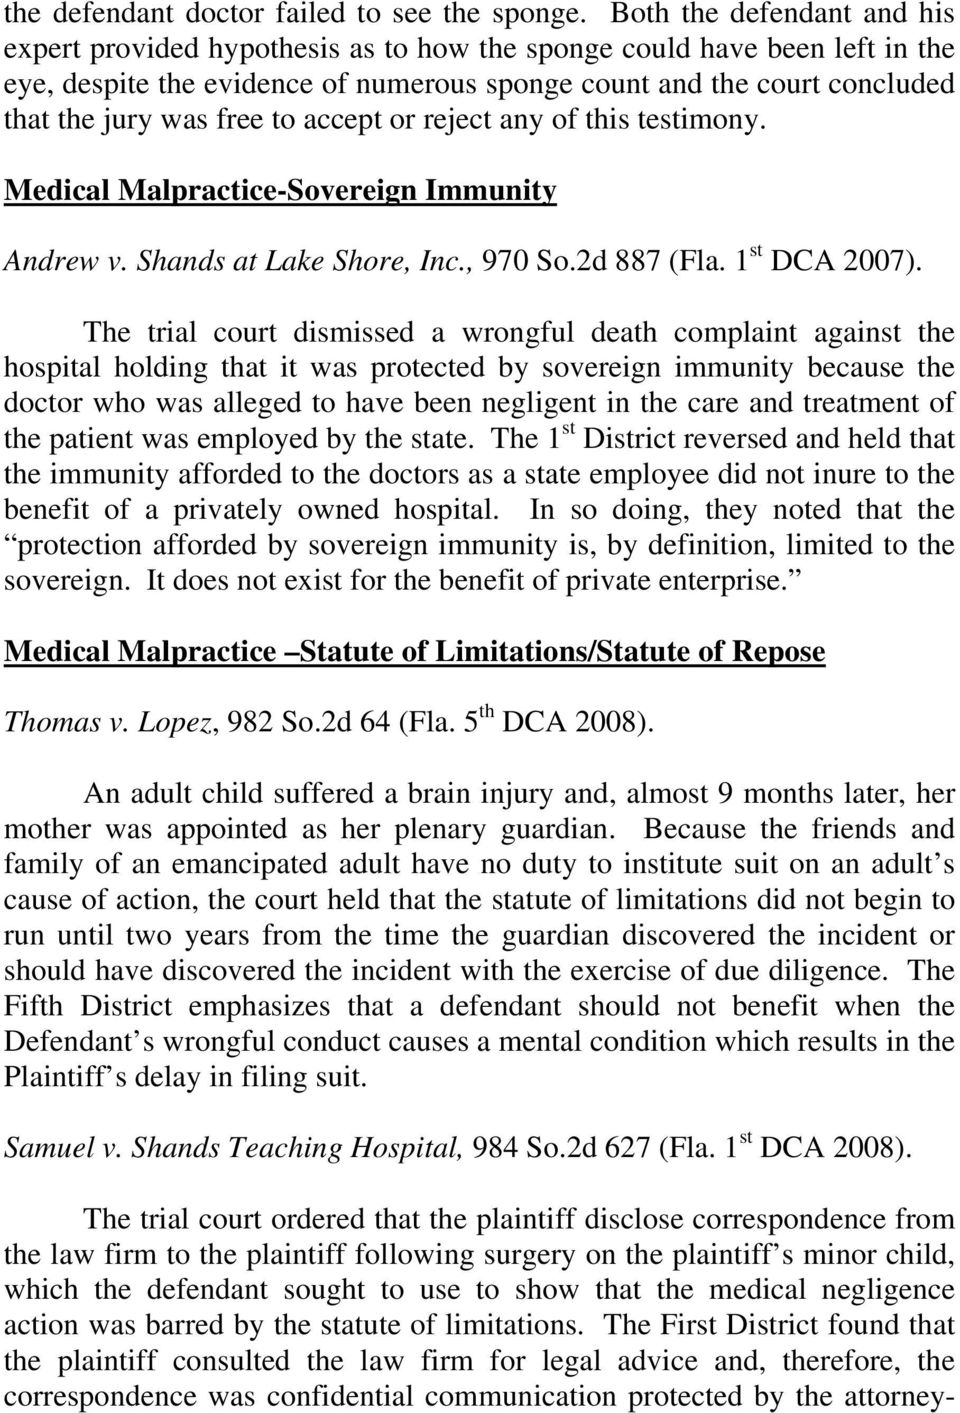 free to accept or reject any of this testimony. Medical Malpractice-Sovereign Immunity Andrew v. Shands at Lake Shore, Inc., 970 So.2d 887 (Fla. 1 st DCA 2007).